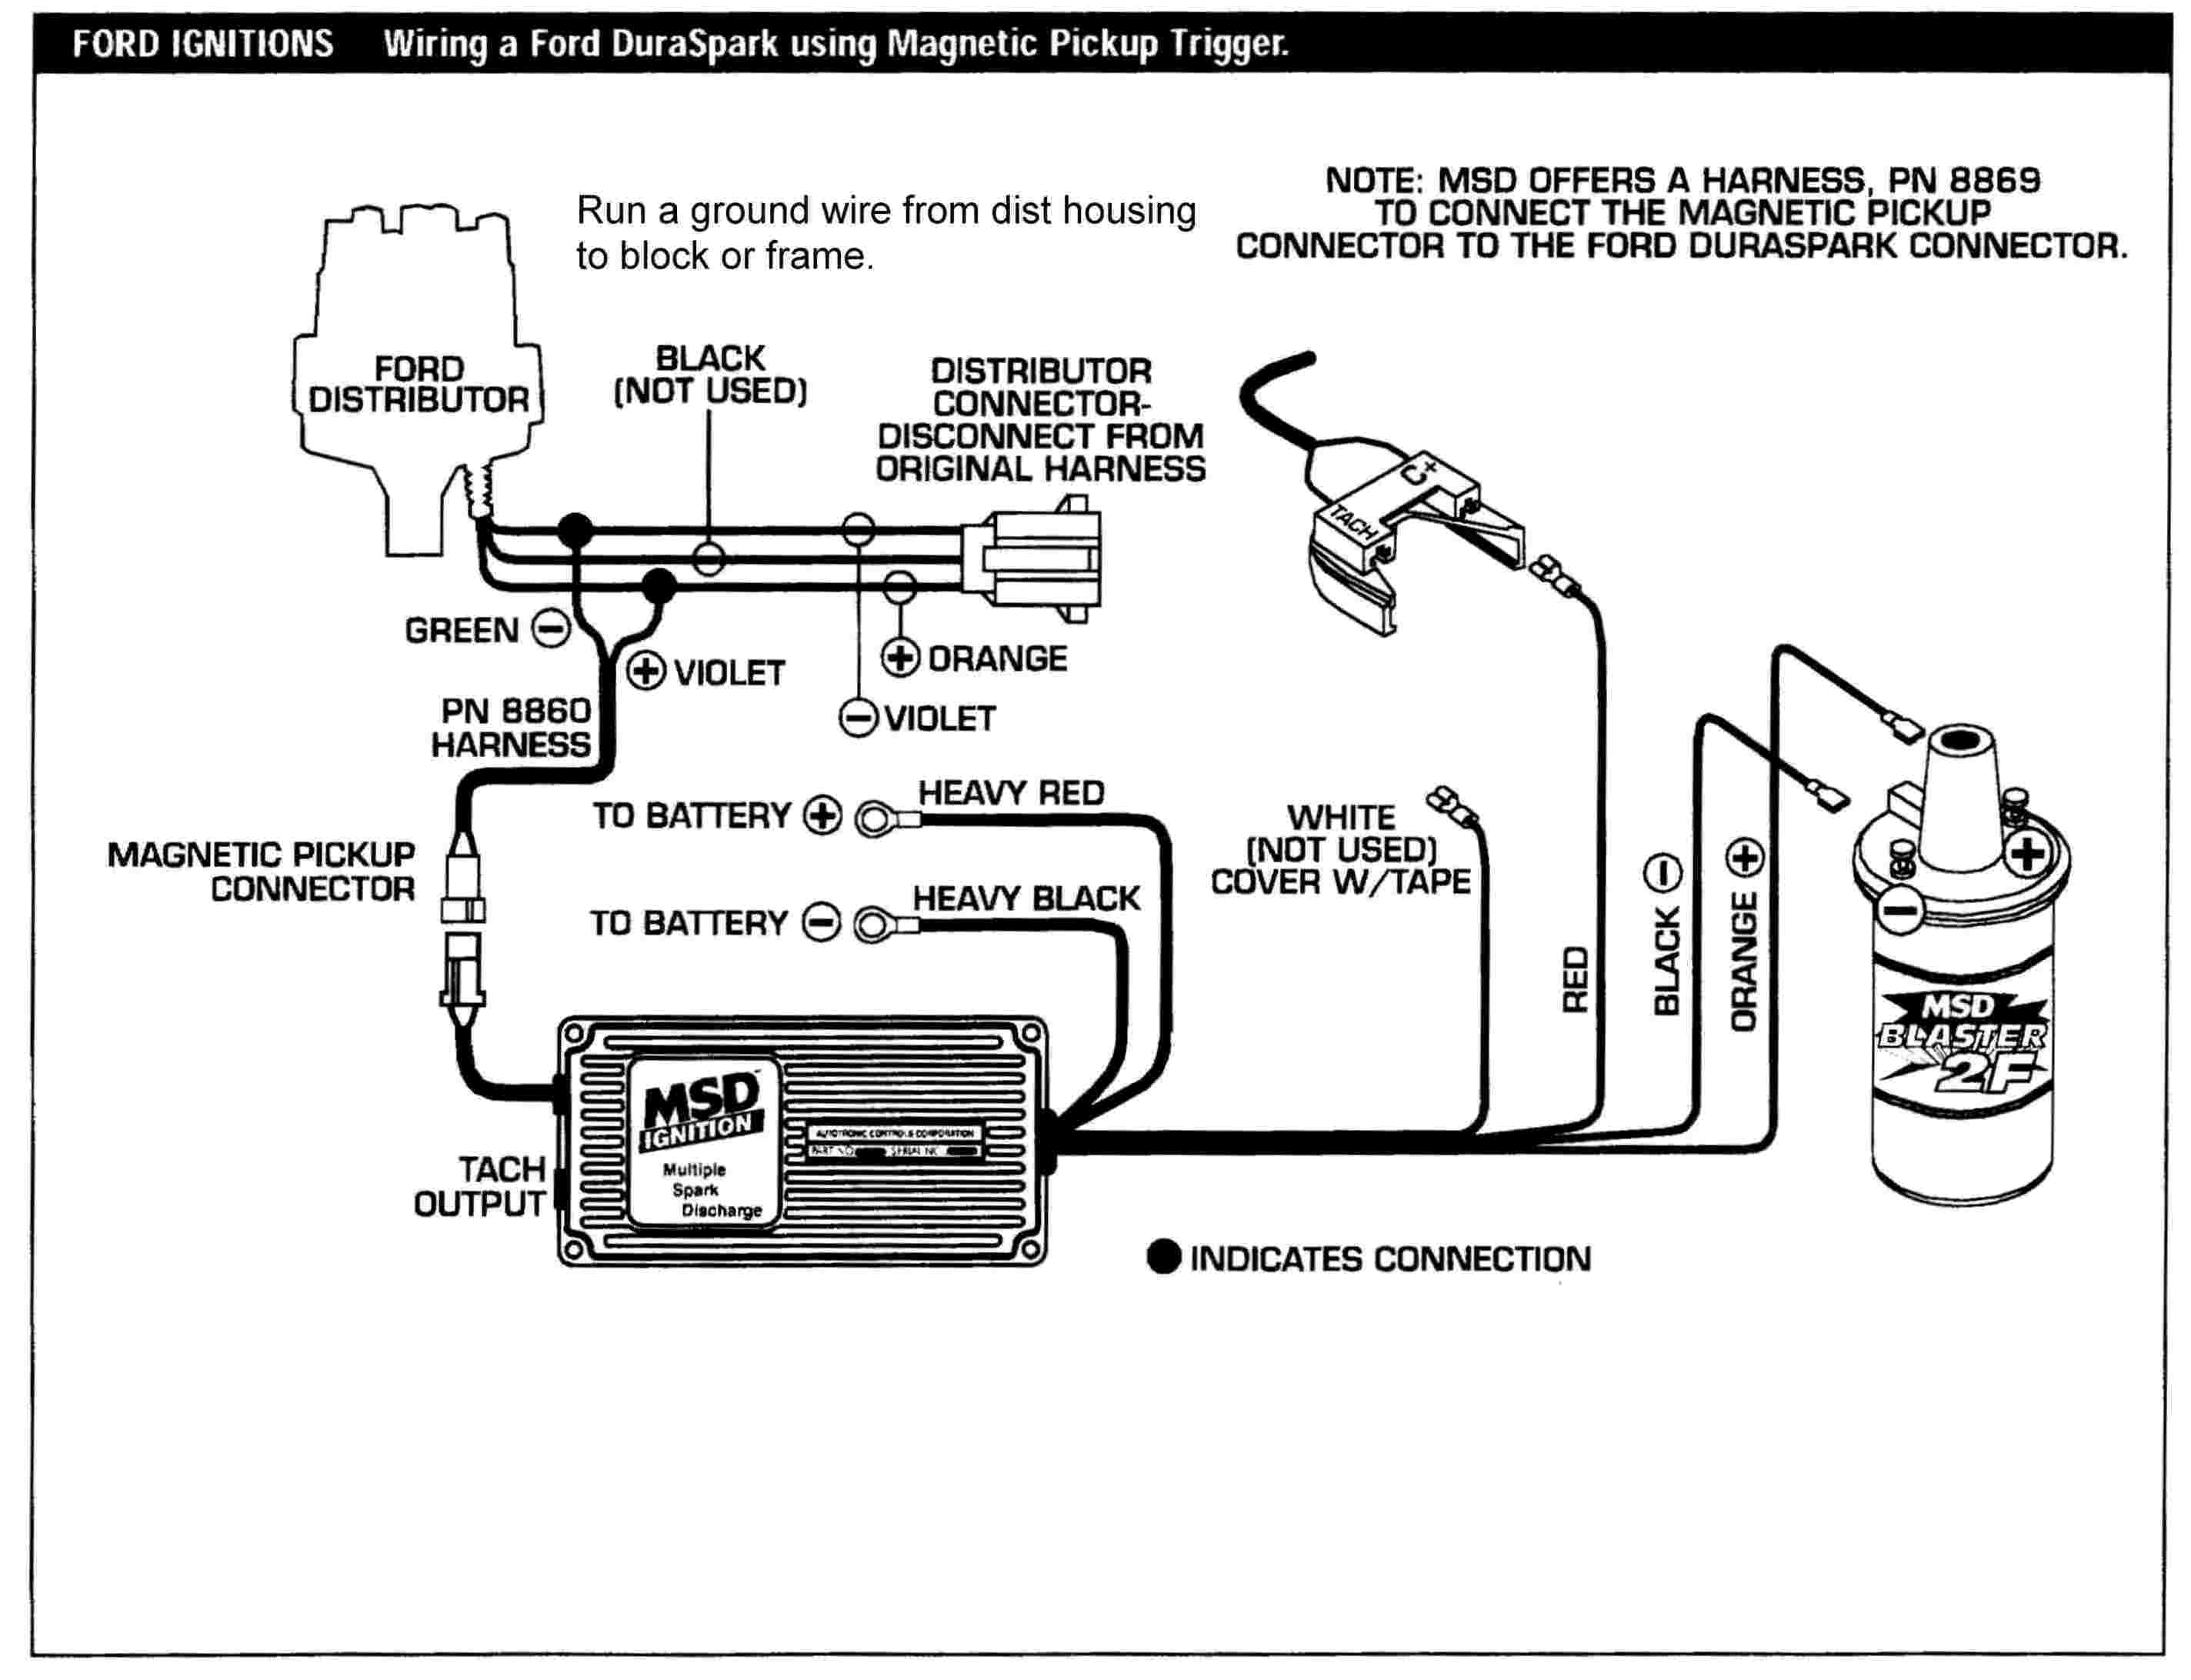 Ford Duraspark MSD schematic automotive component engineering accel super coil wiring diagram at mifinder.co